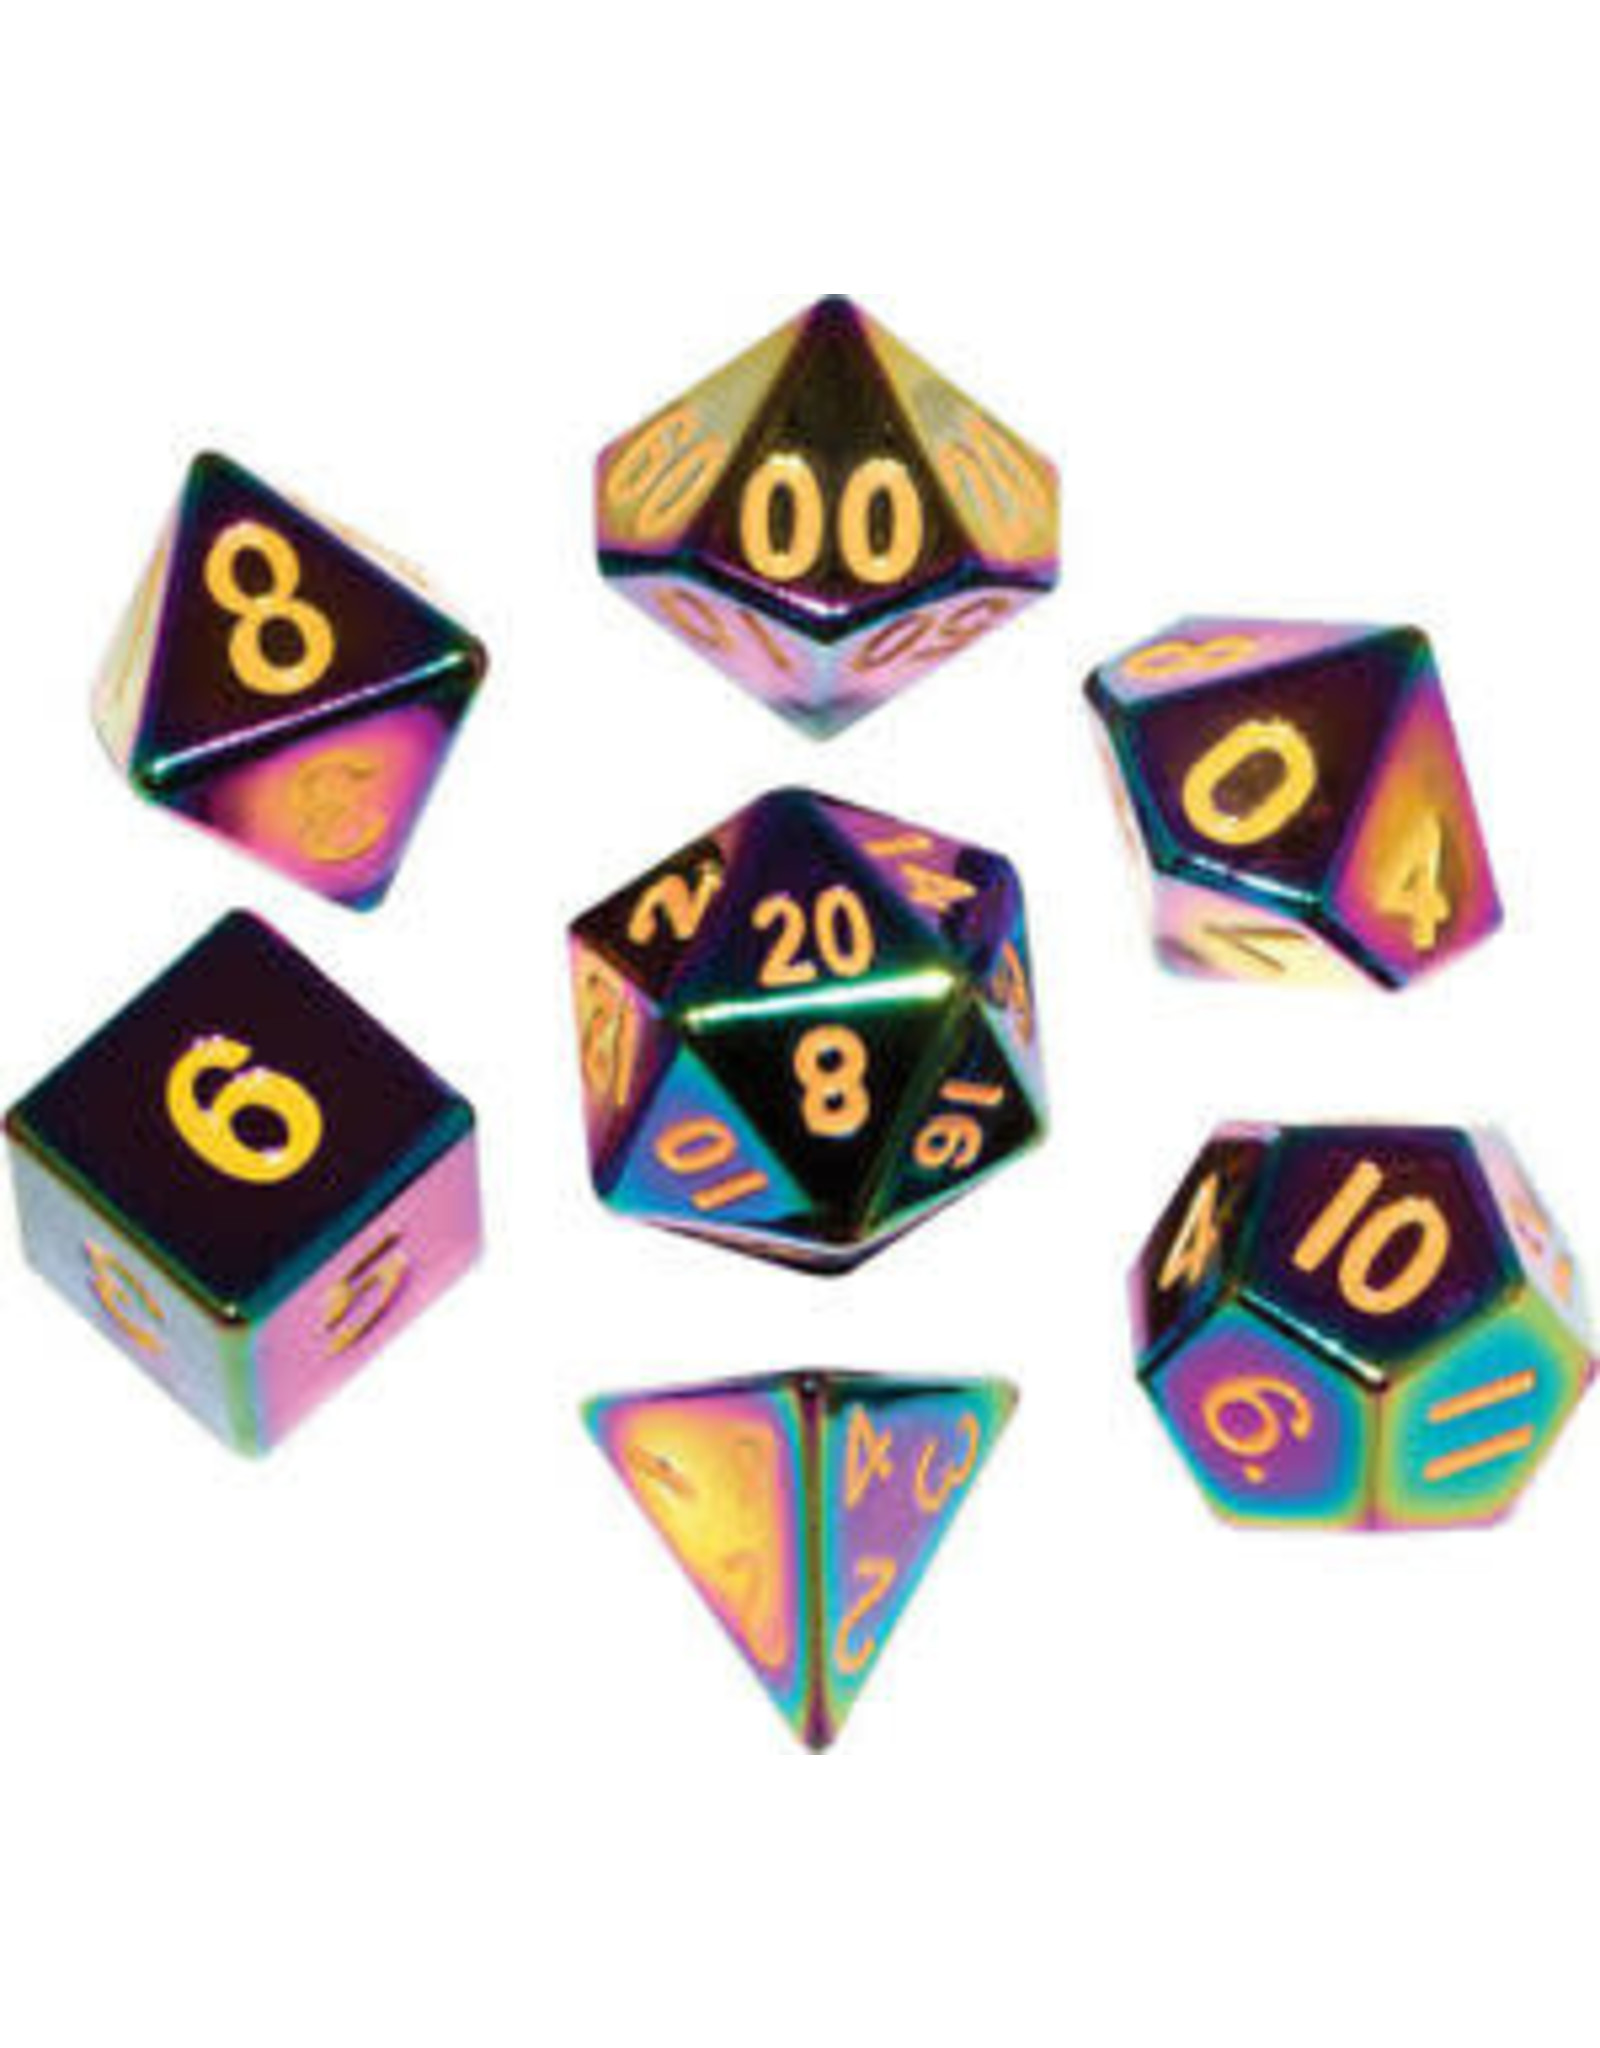 Metallic Dice Games 16mm Flame Torched Rainbow Metal Polyhedral Dice Set